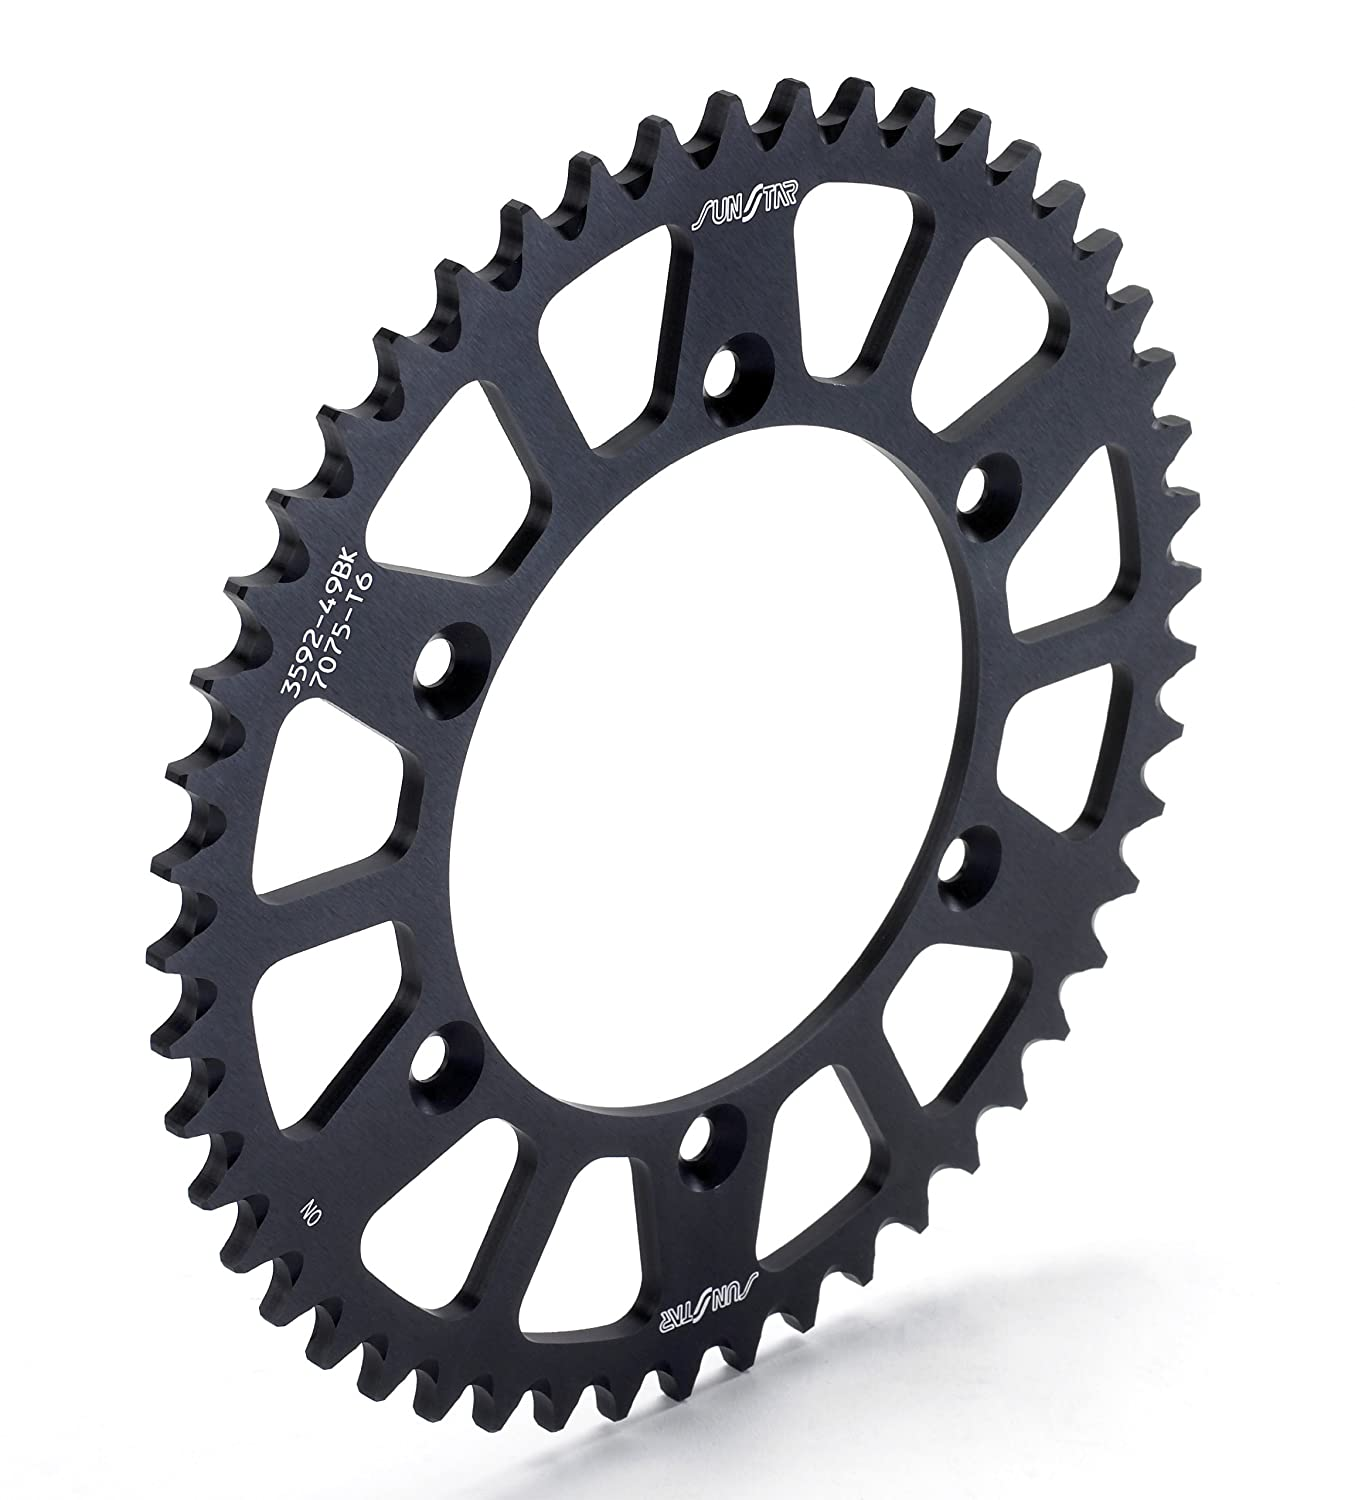 Sunstar 5-361949BK Works Triplestar Black 49-Teeth 520 Chain Size Rear Aluminum Sprocket